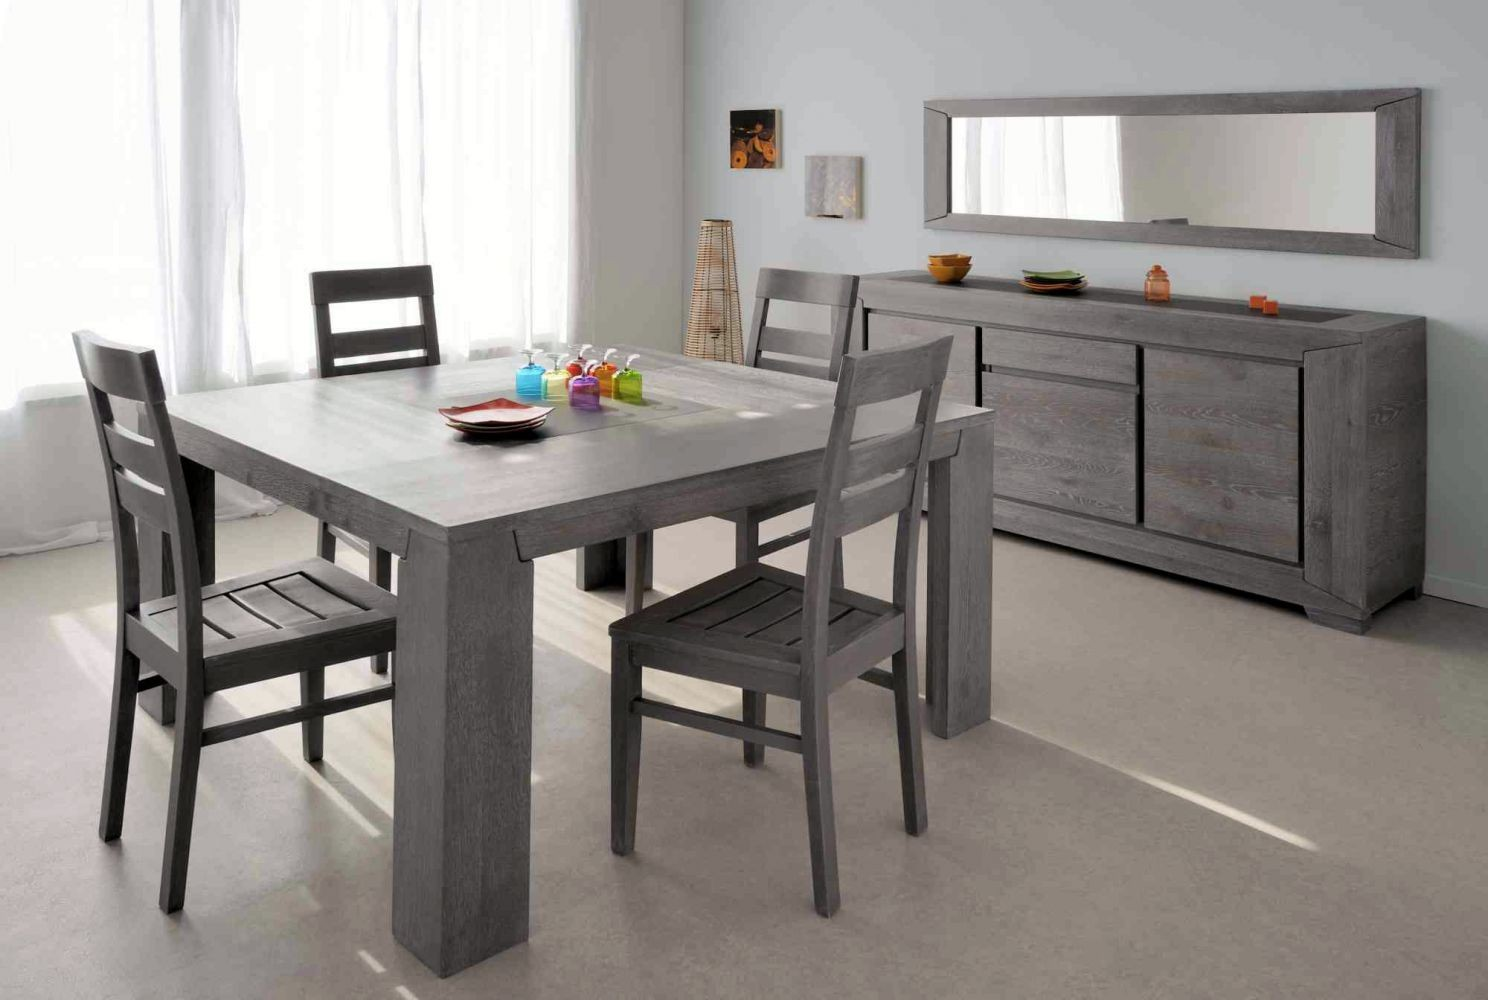 Table cuisine extensible conforama cuisine id es de for Table conforama